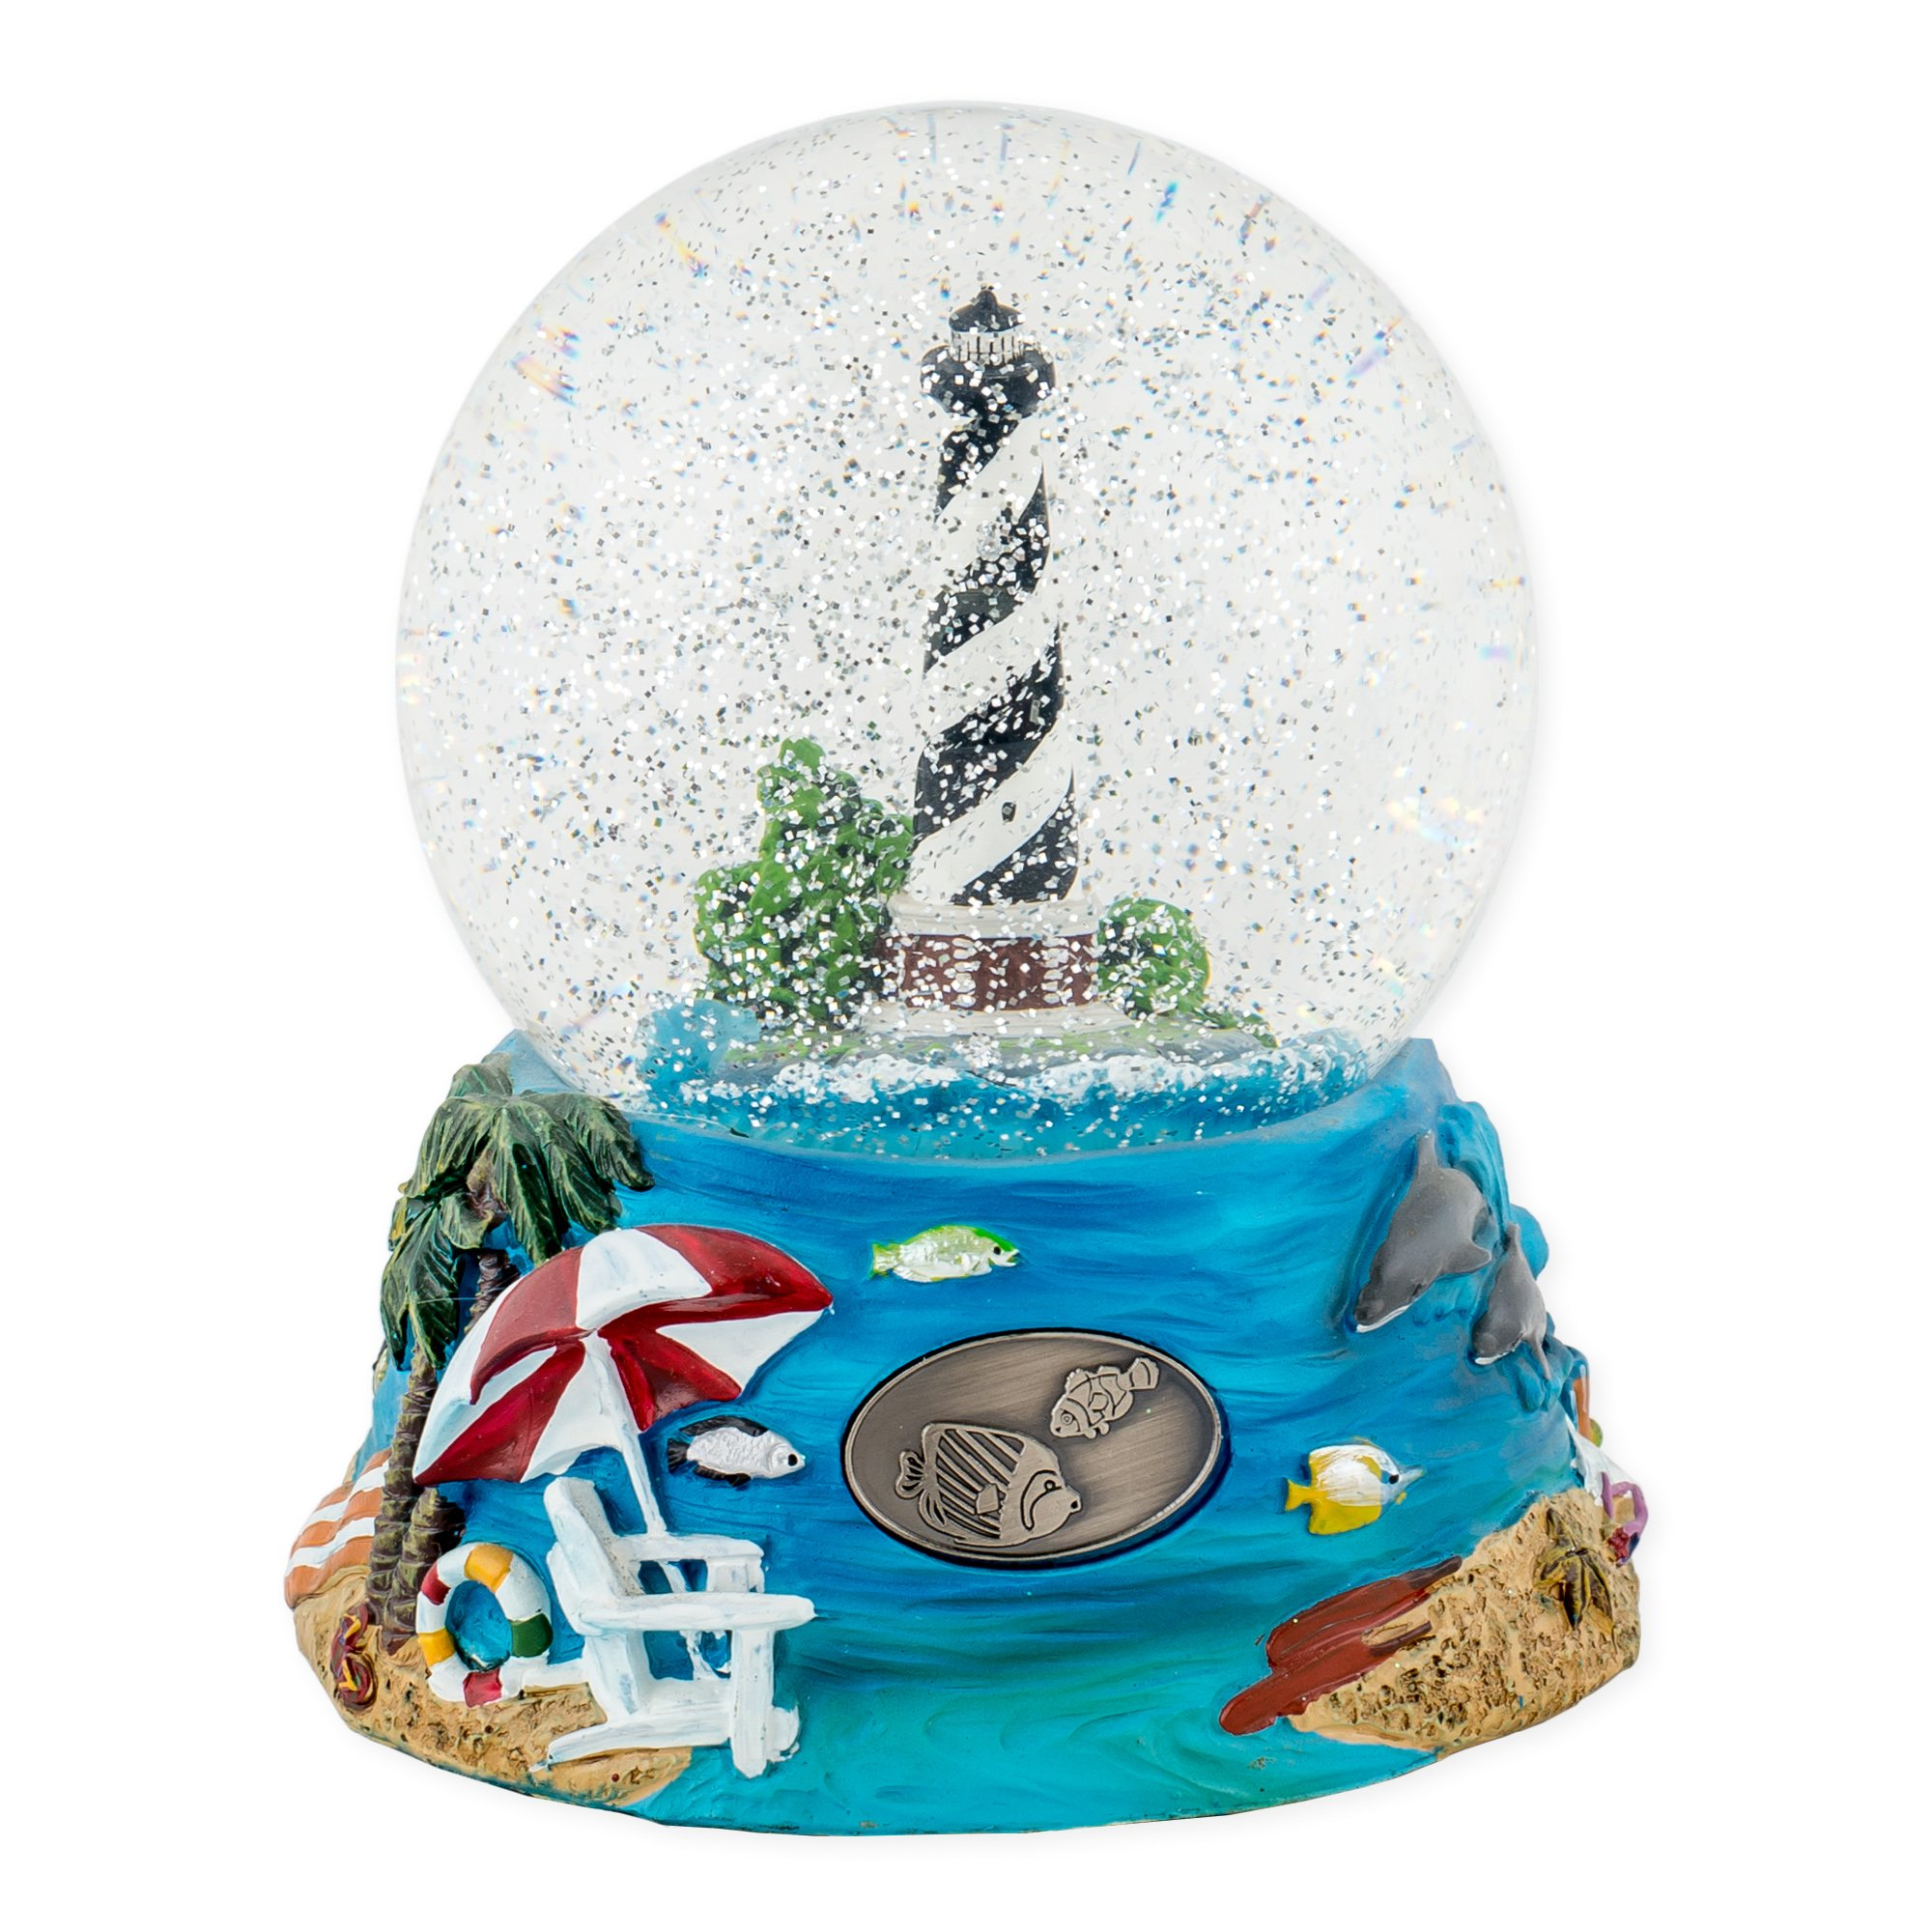 Nautical Lighthouse 100mm Resin Glitter Water Globe Plays Tune Over The Waves by Cadona International, Inc